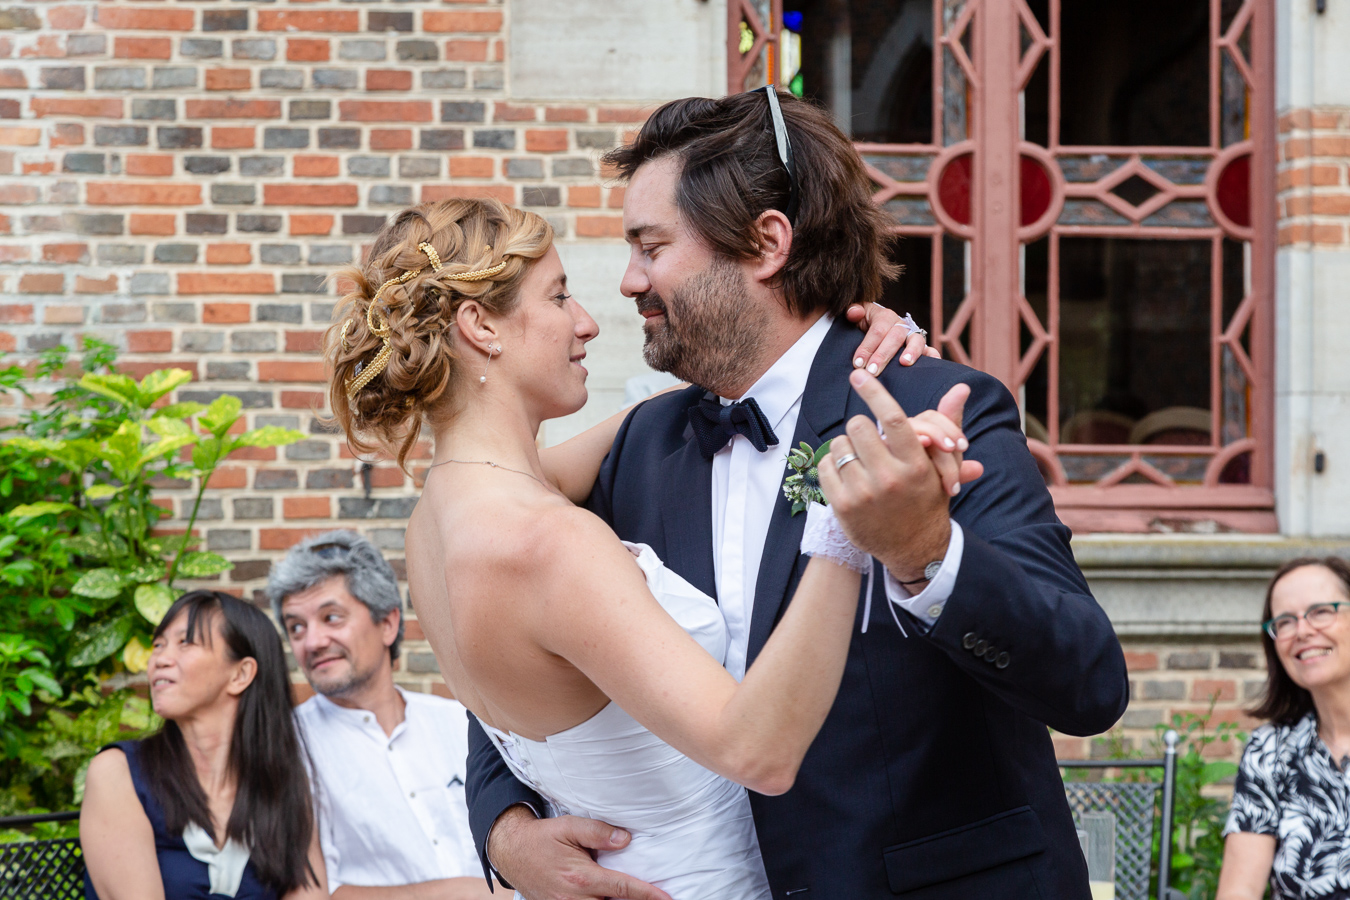 The bride and groom enjoy the first dance during their Wedding Party Chateau de Maulmont near Vichy, France.